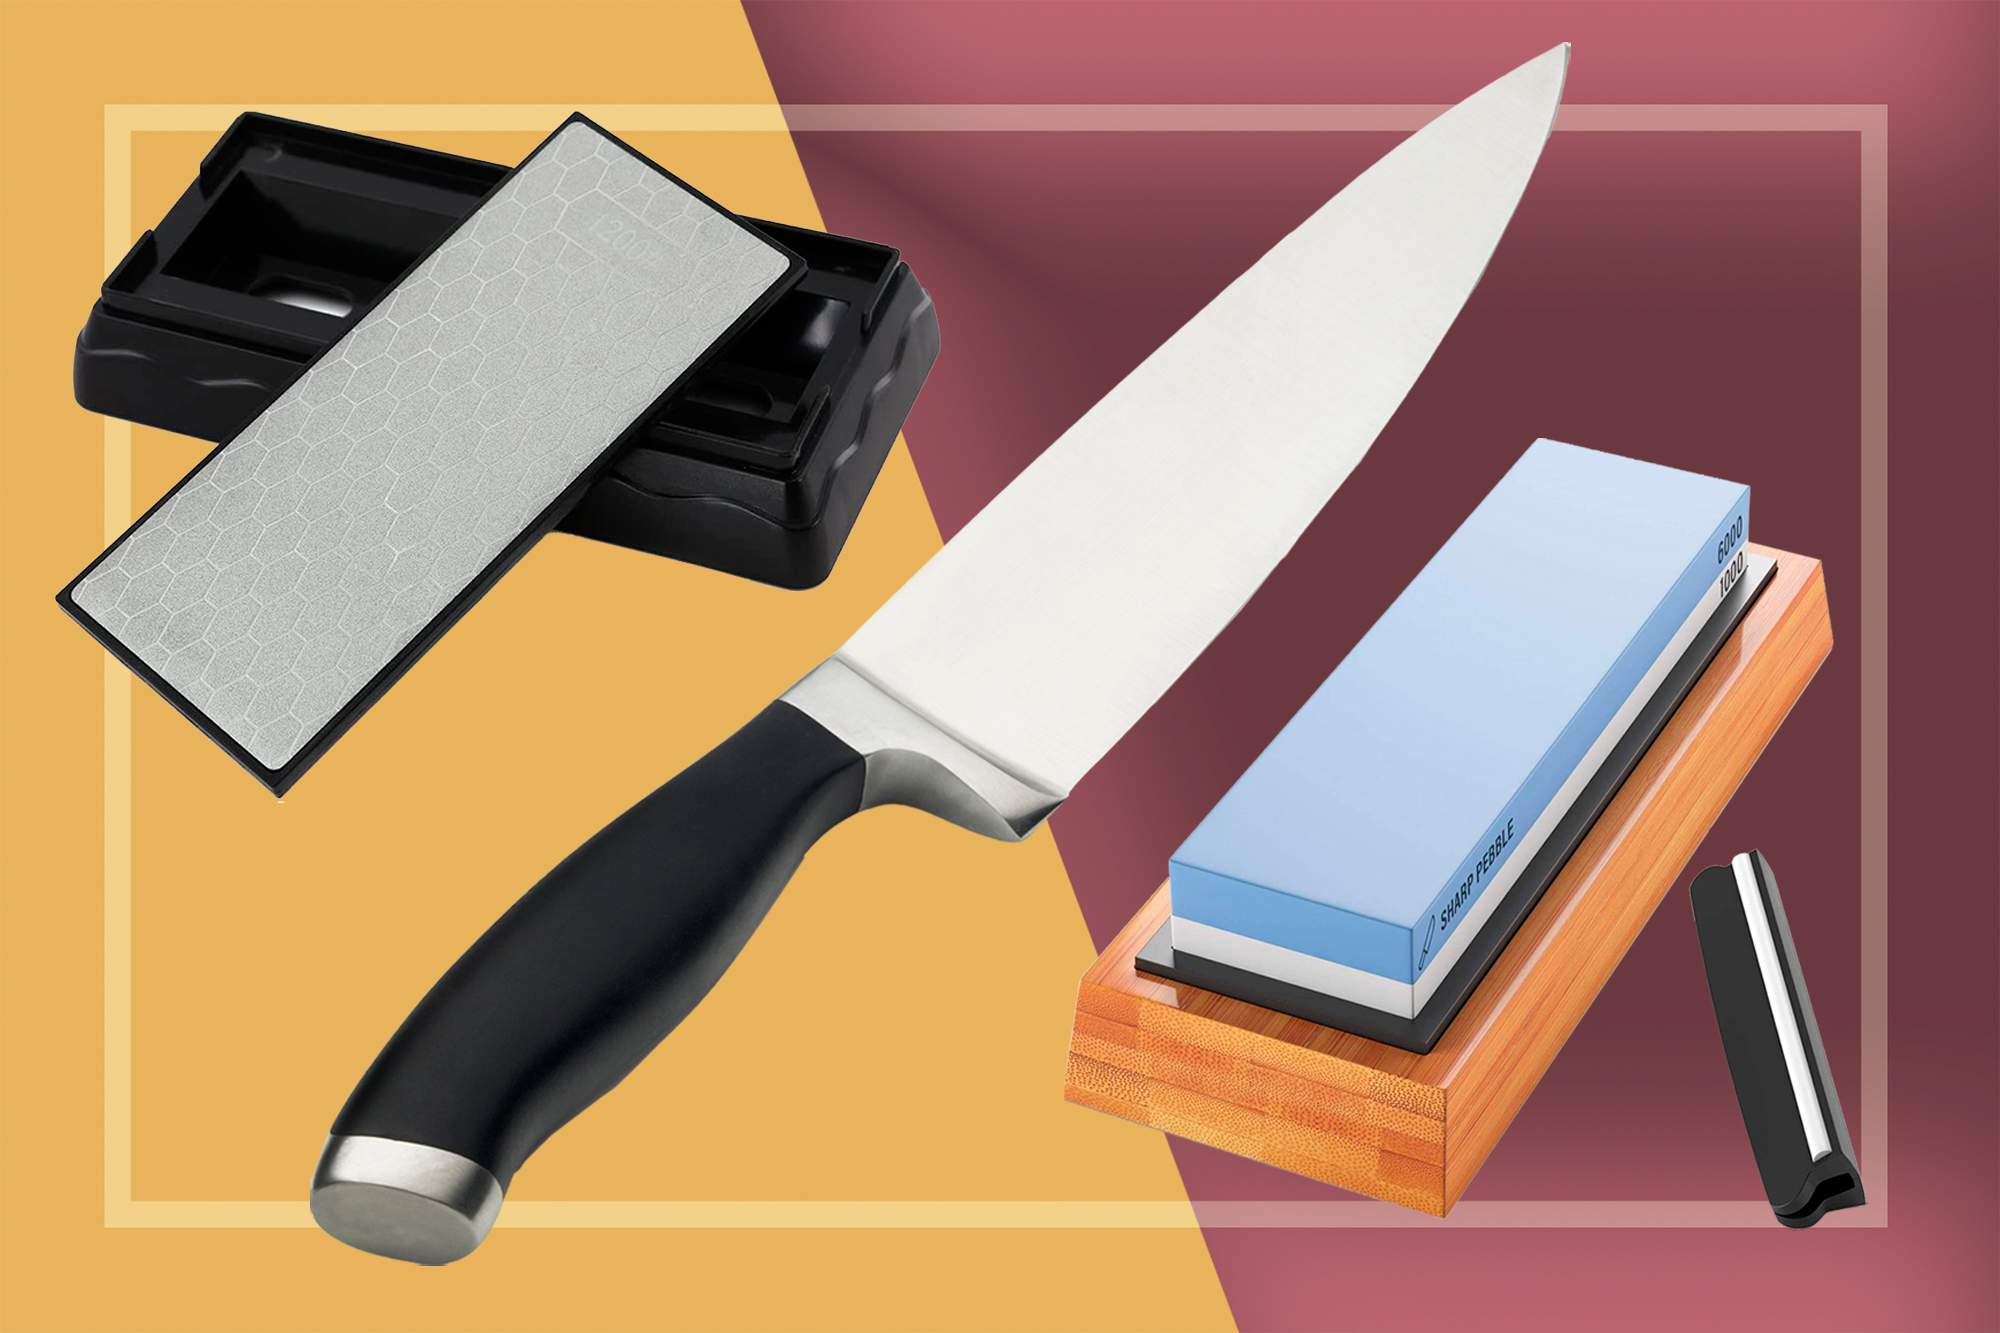 Sharpening Stones and a chef knife